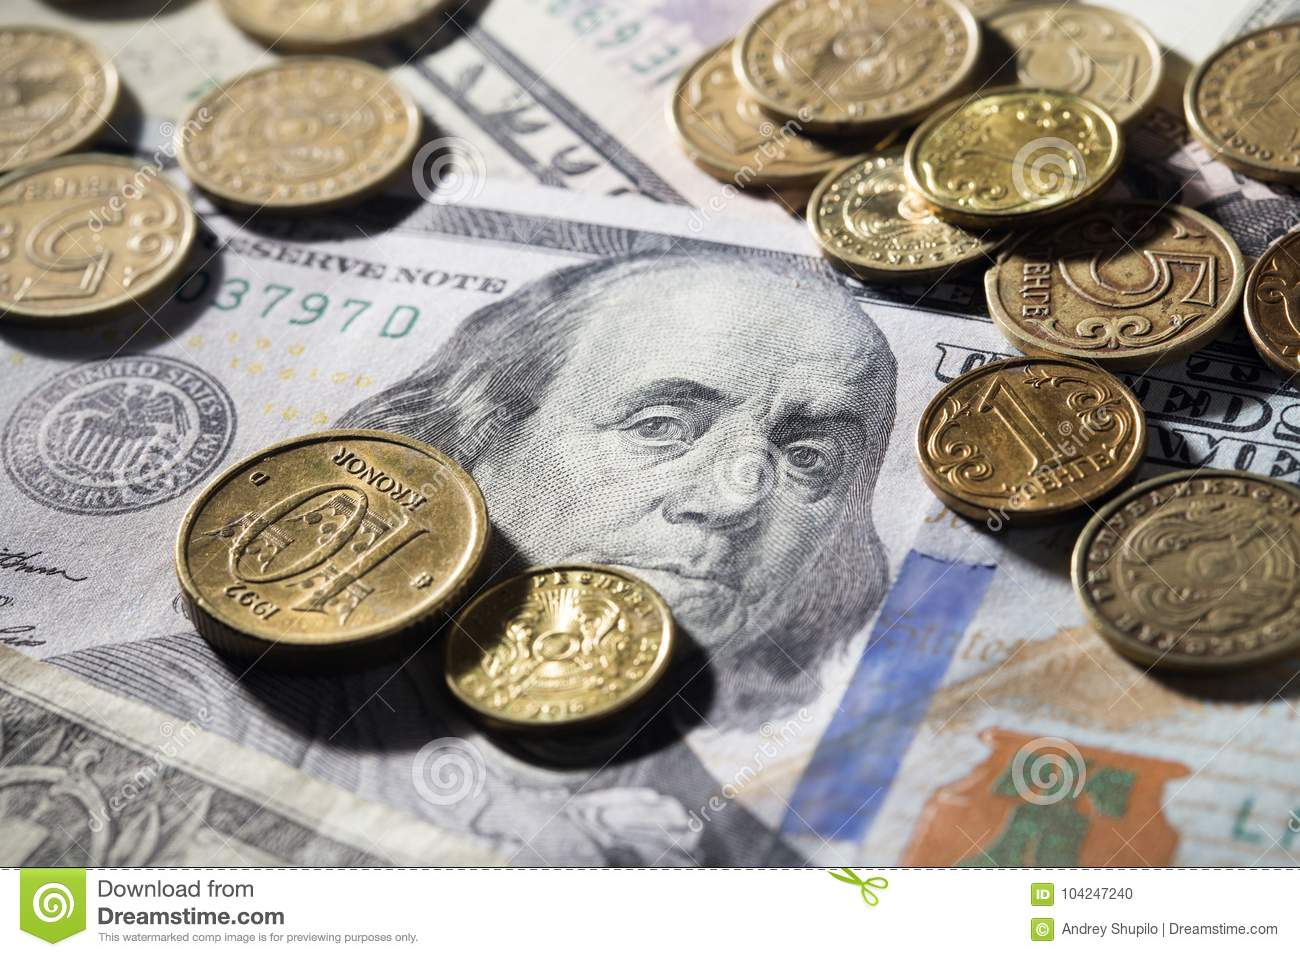 Coins and dollars stock photo  Image of america, euro - 104247240